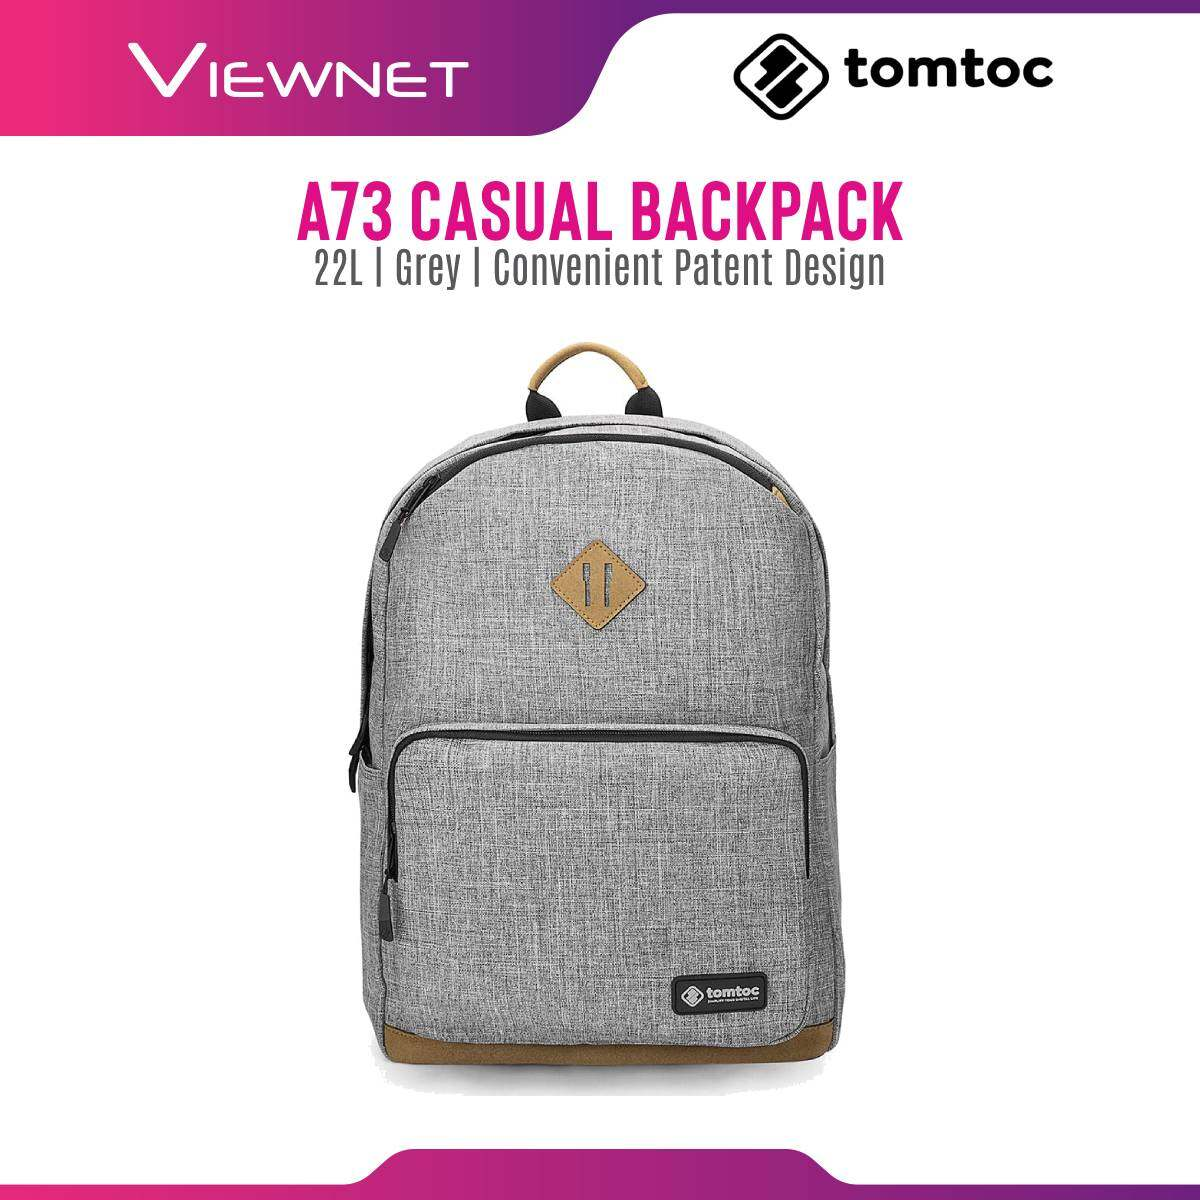 Tomtoc A73 Casual Notebook Backpack with Convenient Patent Design